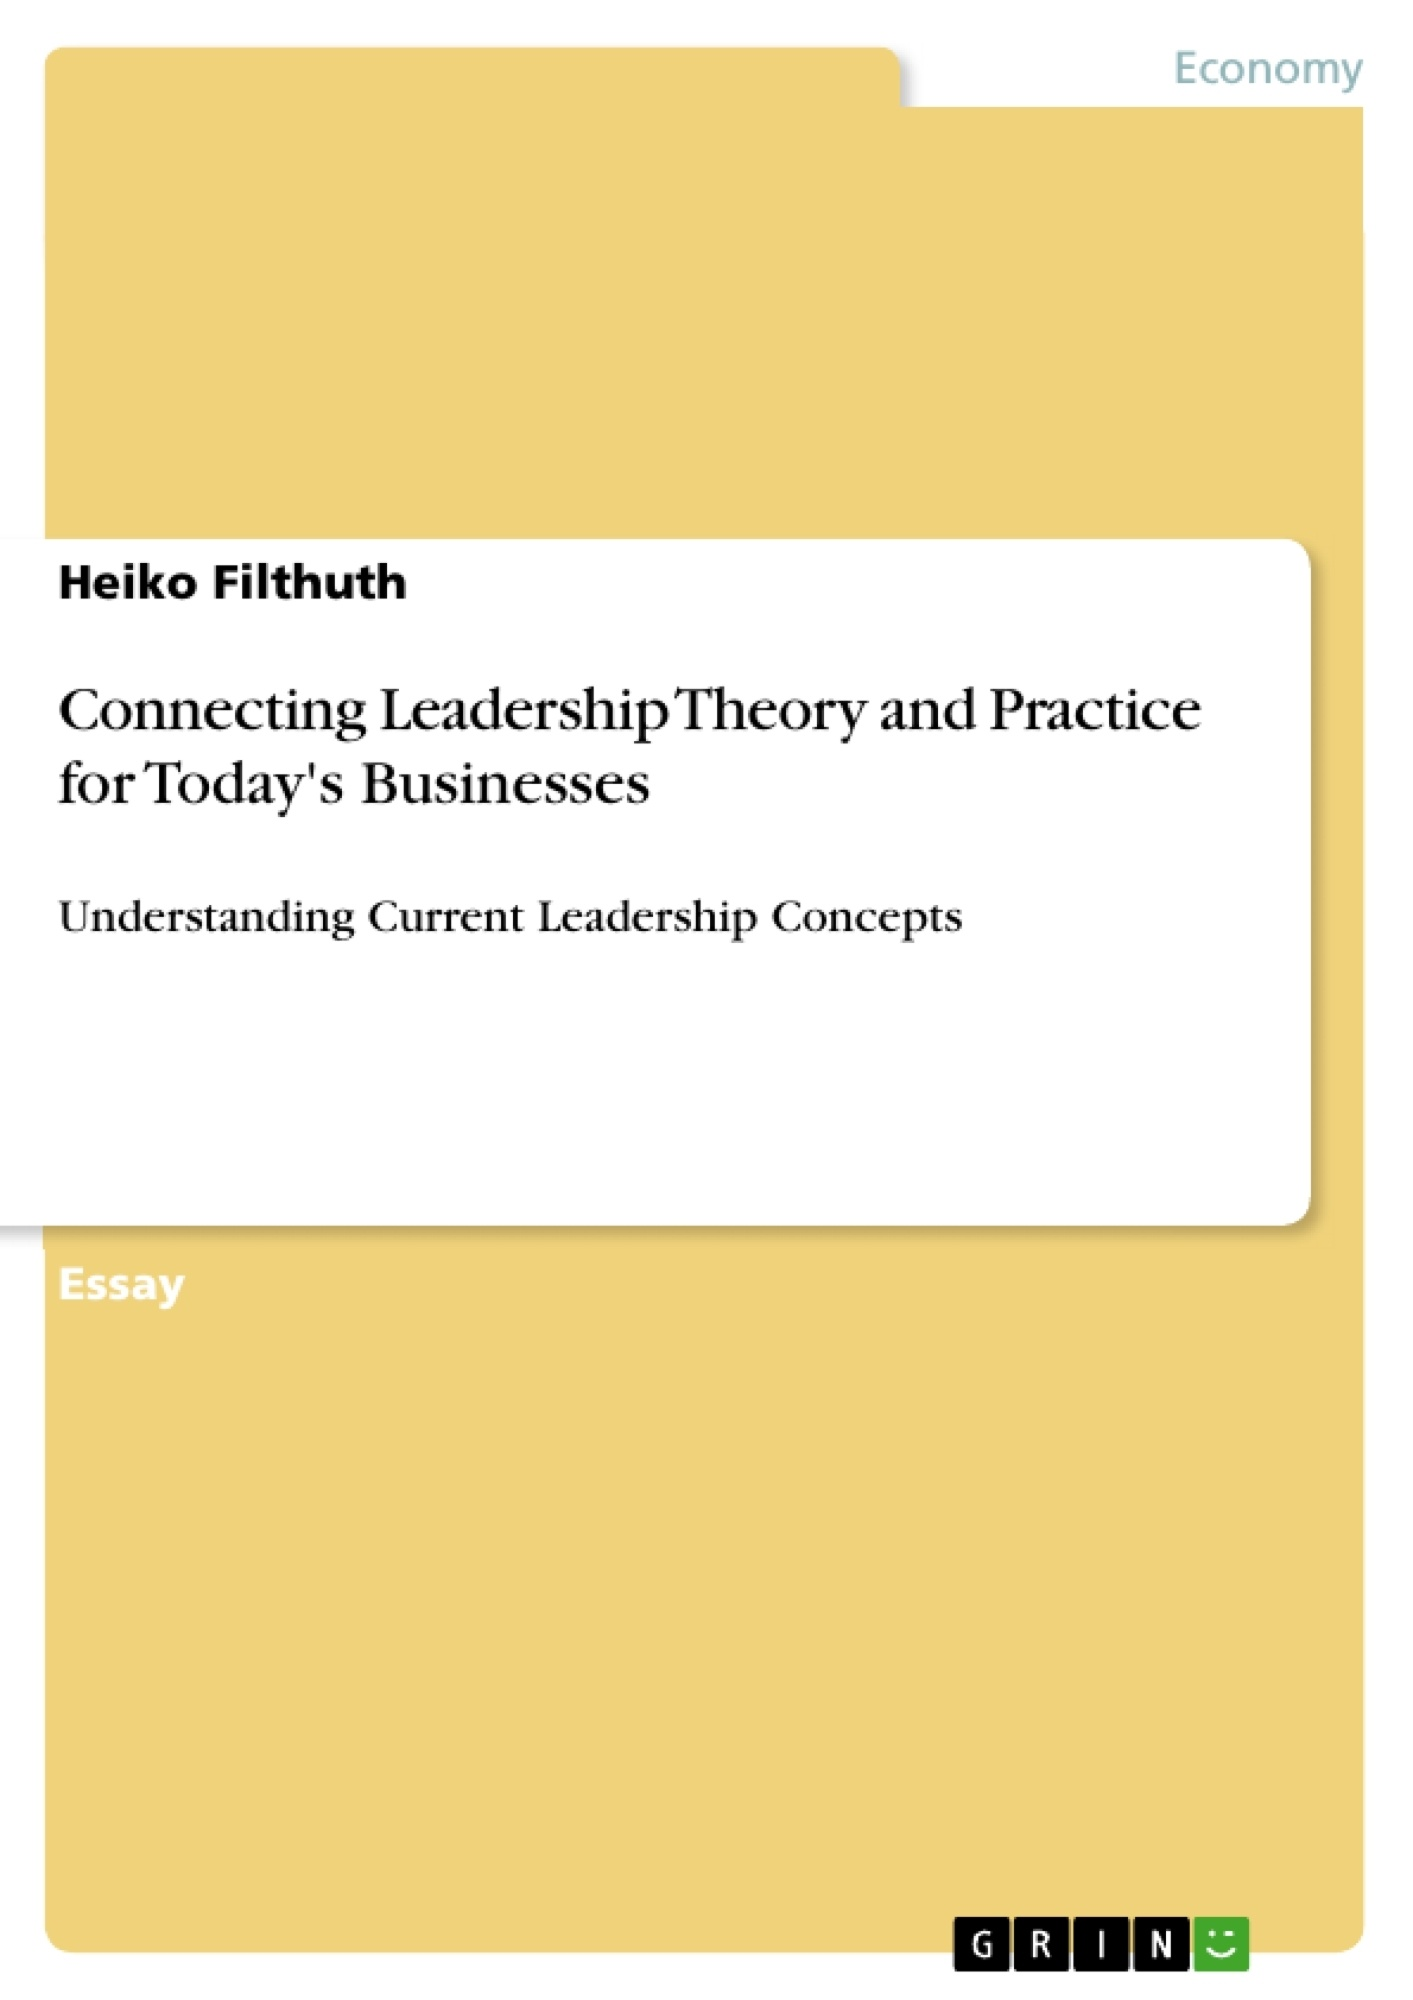 Title: Connecting Leadership Theory and Practice for Today's Businesses